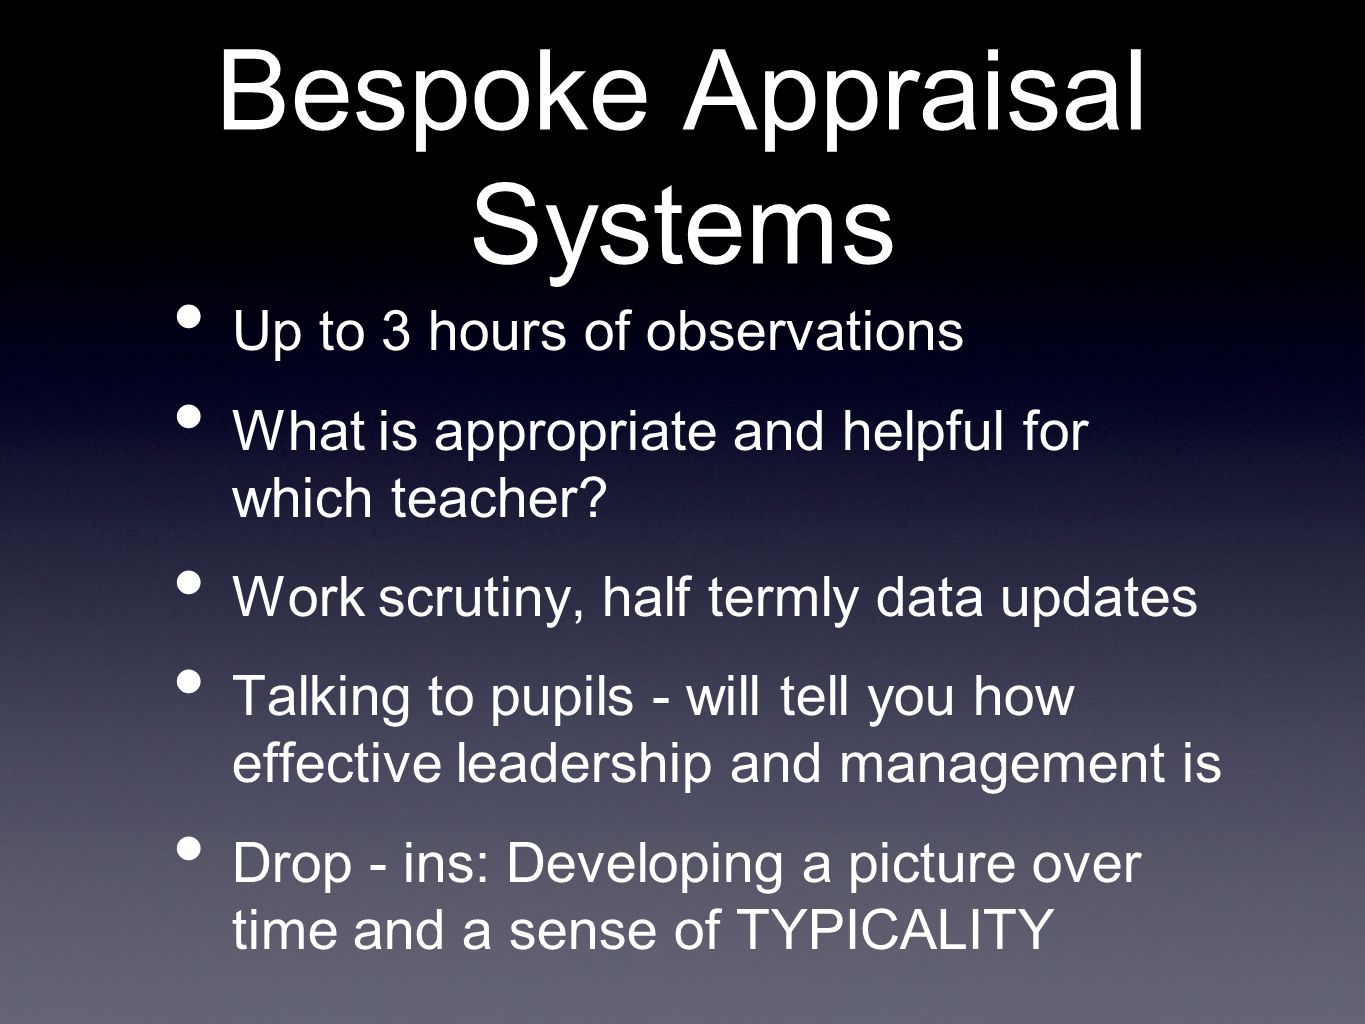 Bespoke Appraisal Systems Up to 3 hours of observations What is appropriate and helpful for which teacher? Work scrutiny, half termly data updates Tal